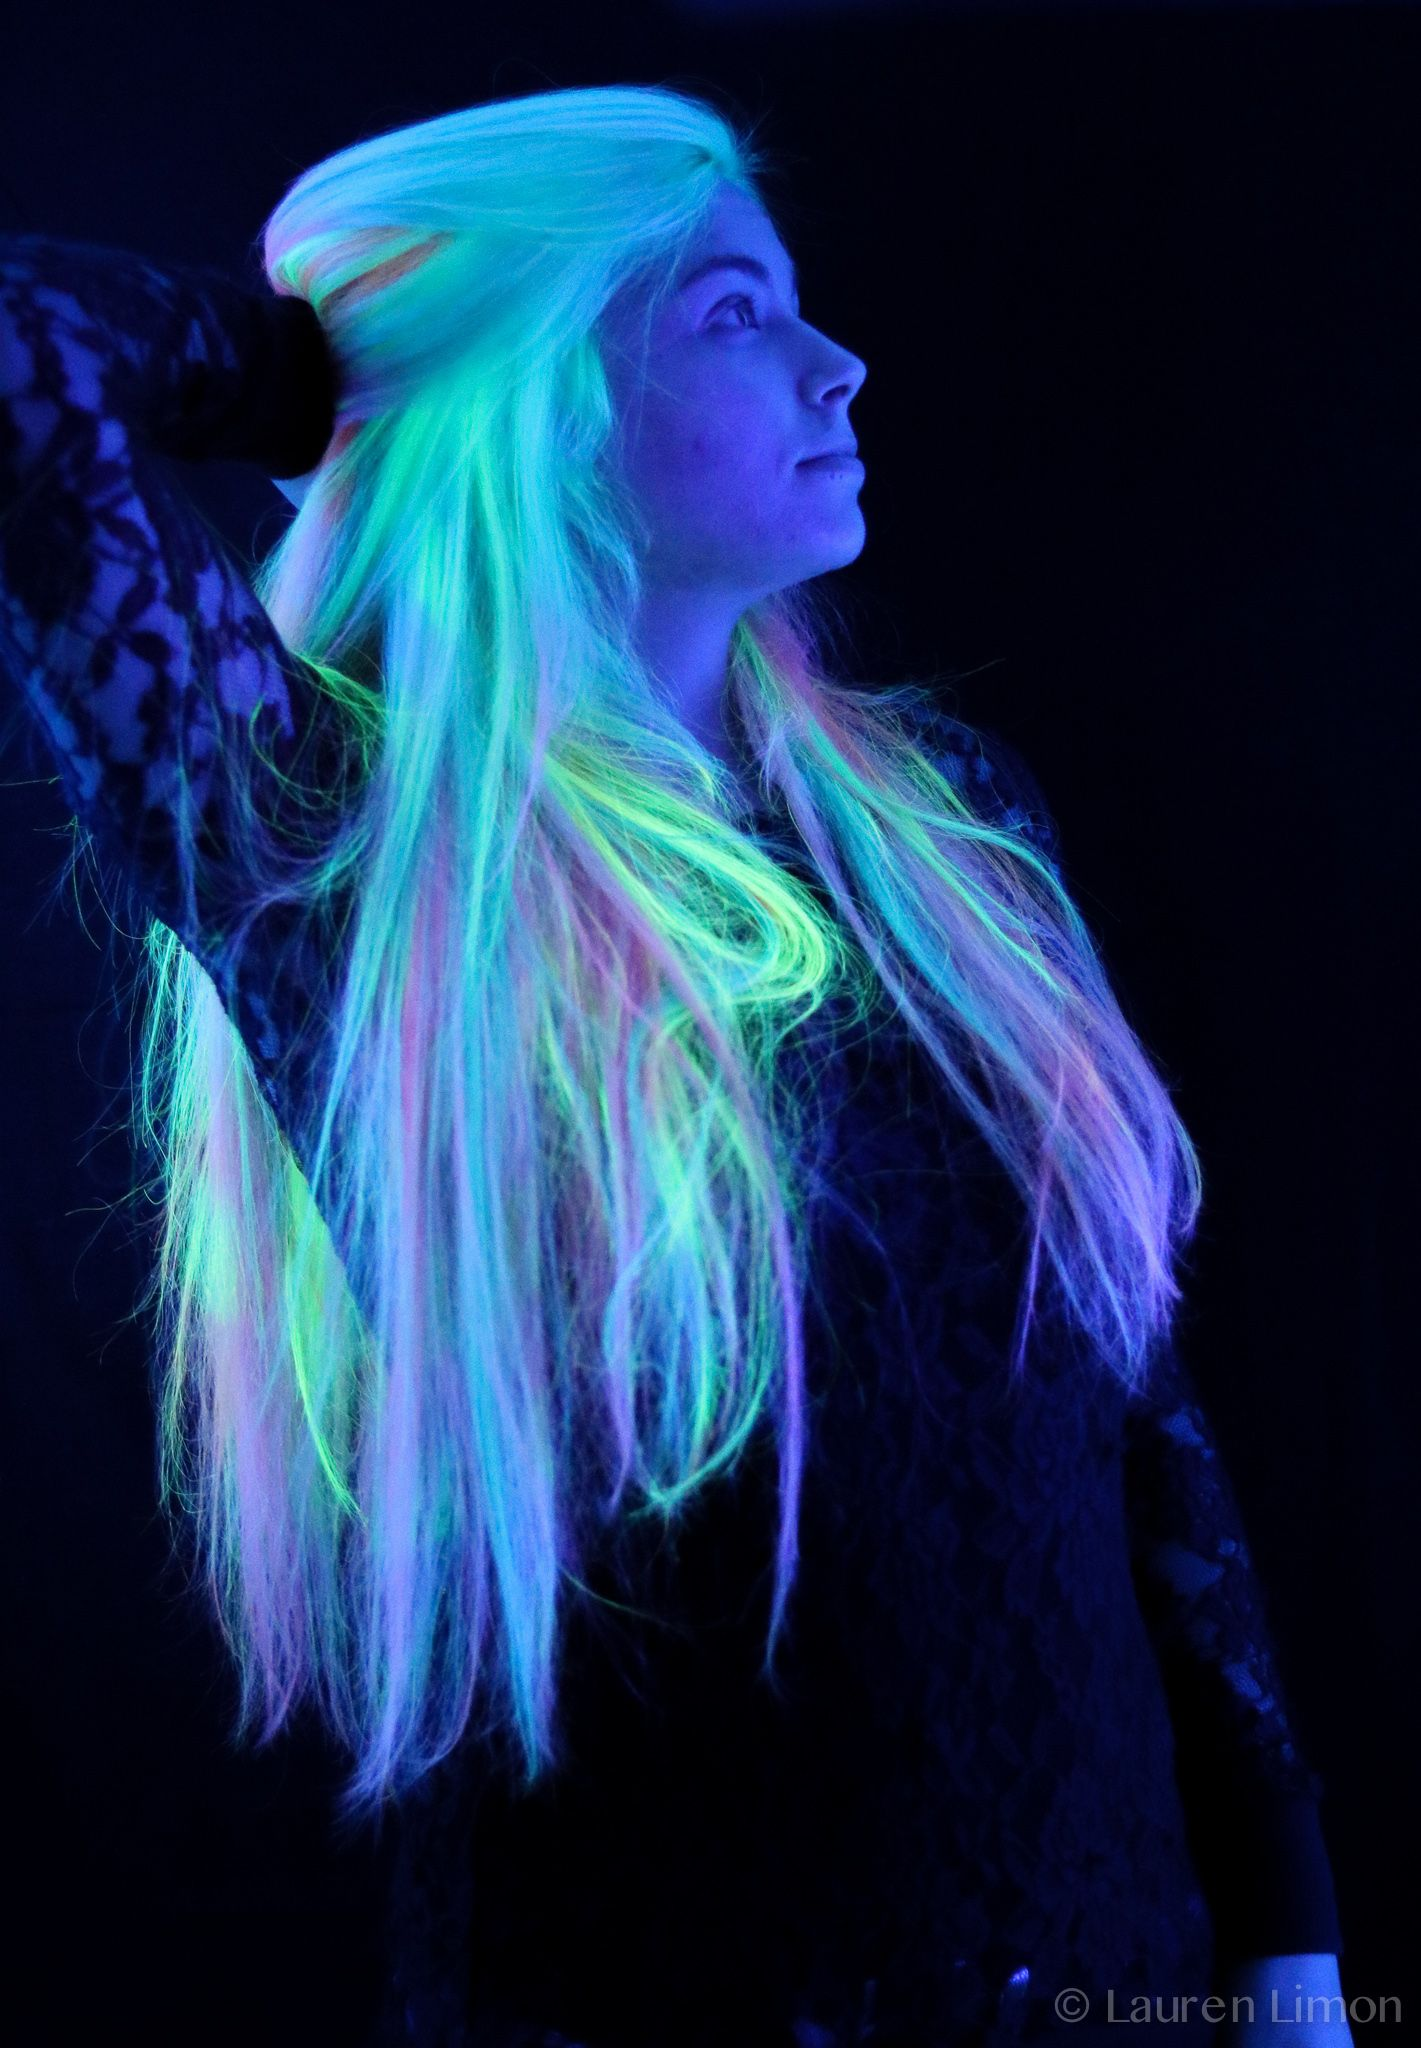 Blacklight Neon Hair Done With The New Kenra Neons Photo By